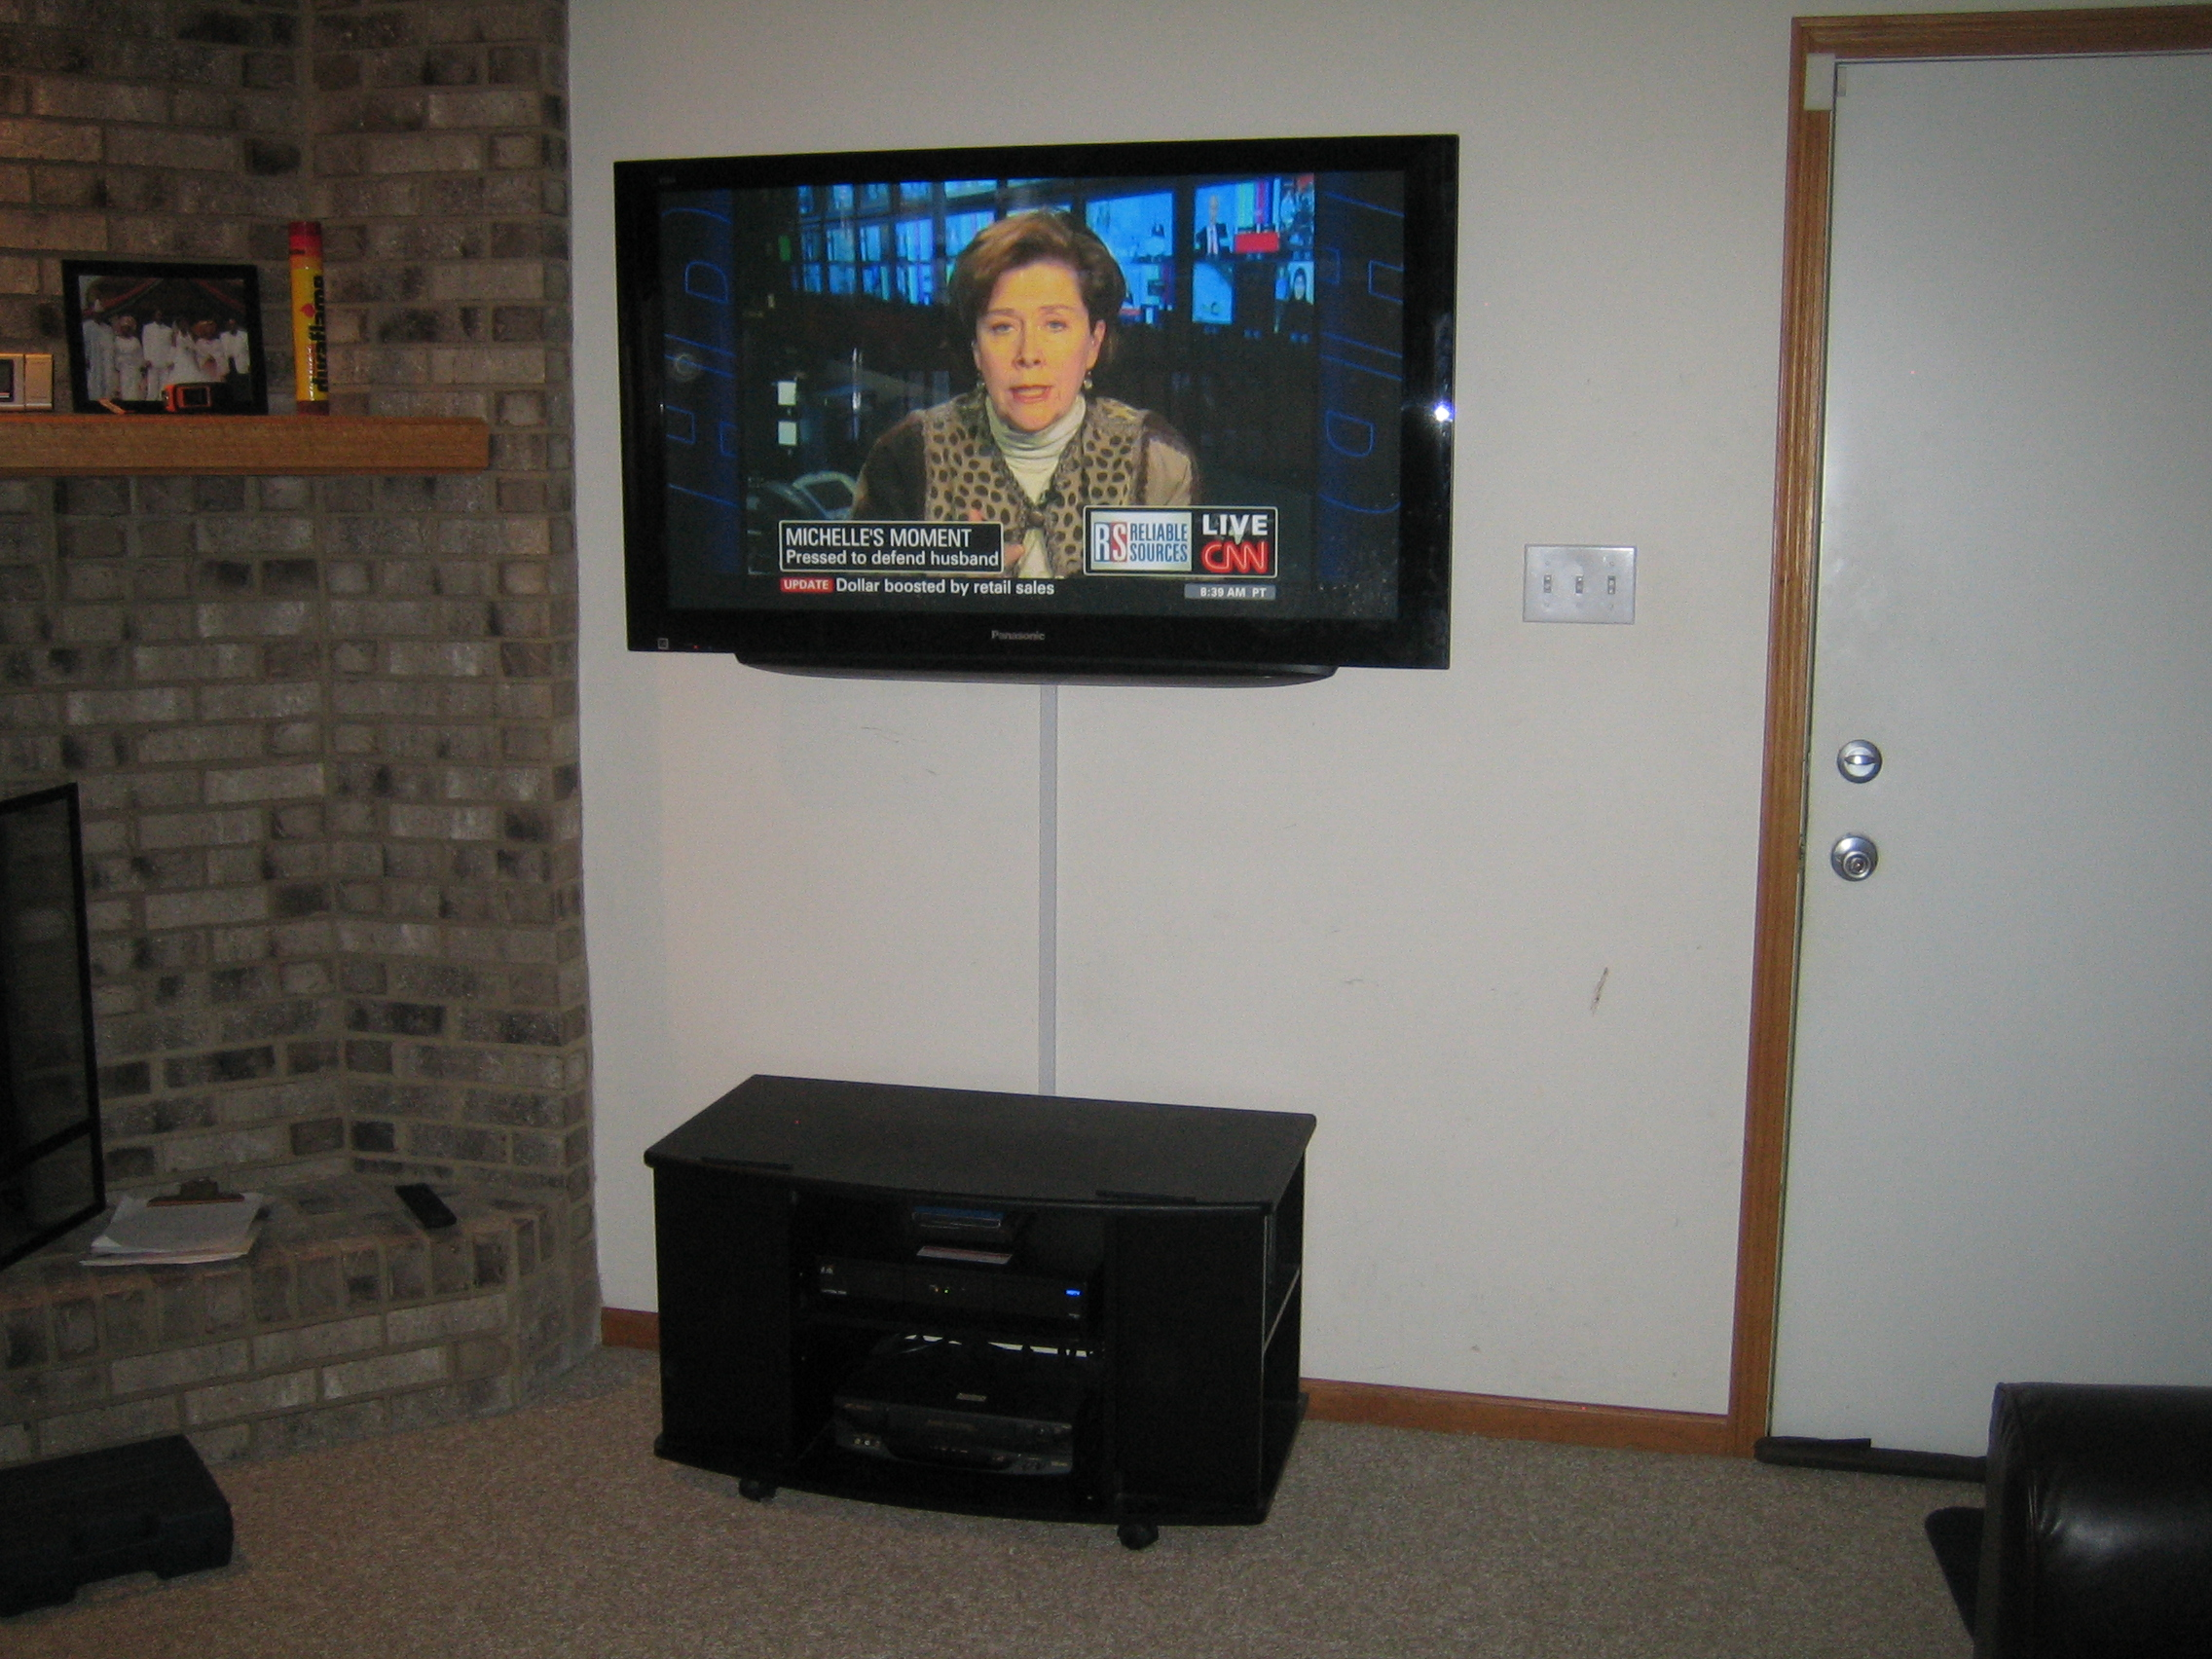 Best Tv Mount Service By Music Evolution Installs Home Wiring Wall Wires Cables Are Left Exposed Or Optional Wire Mold Is Used To Hide